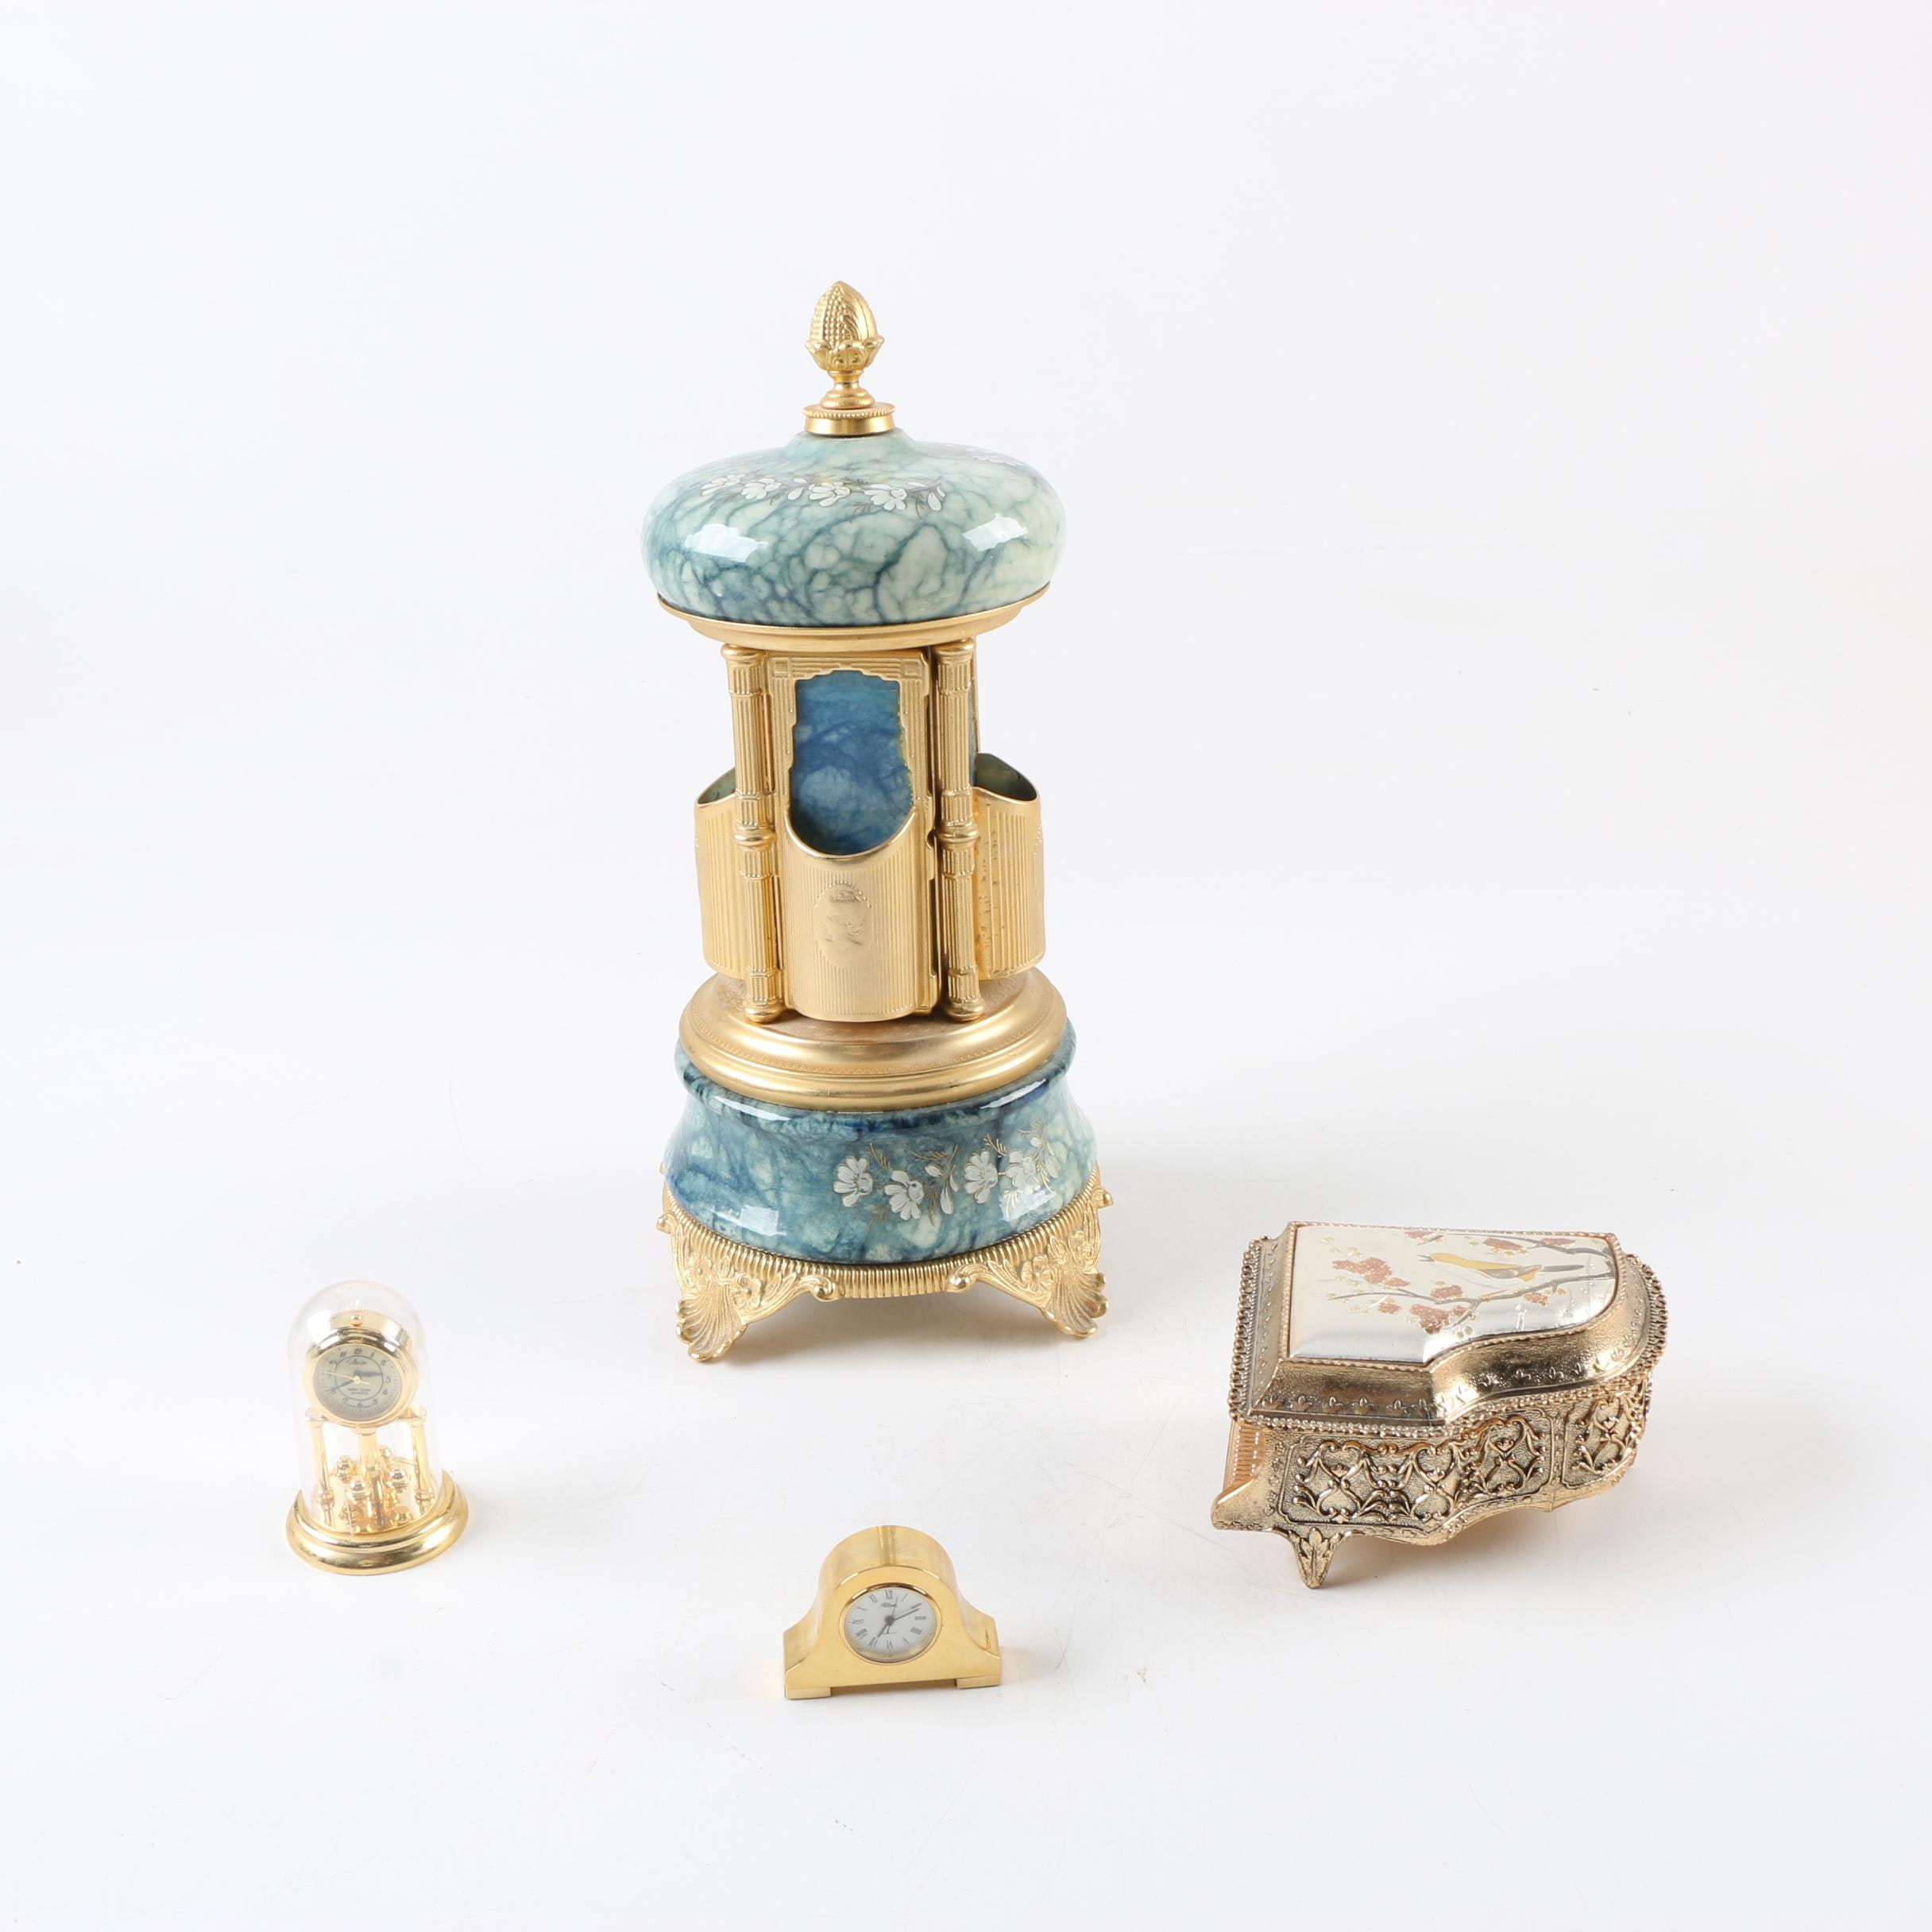 Musical Lipstick Holder, Trinket Box and Clocks